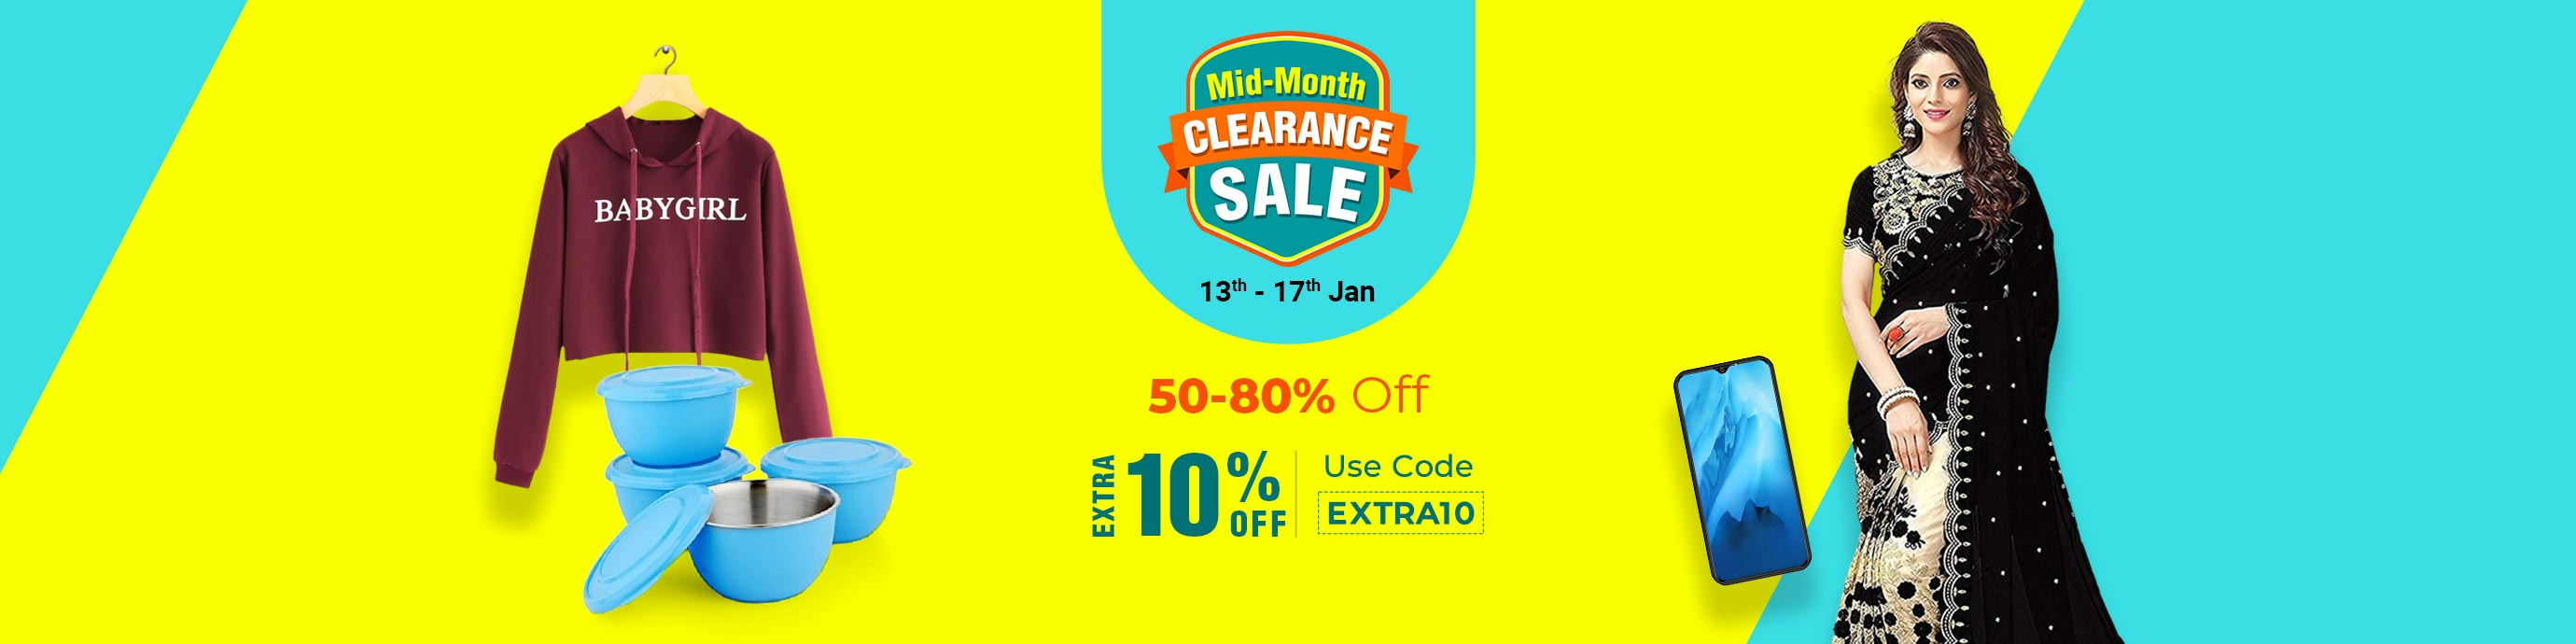 ShopClues.com - Upto 80% Off on all products